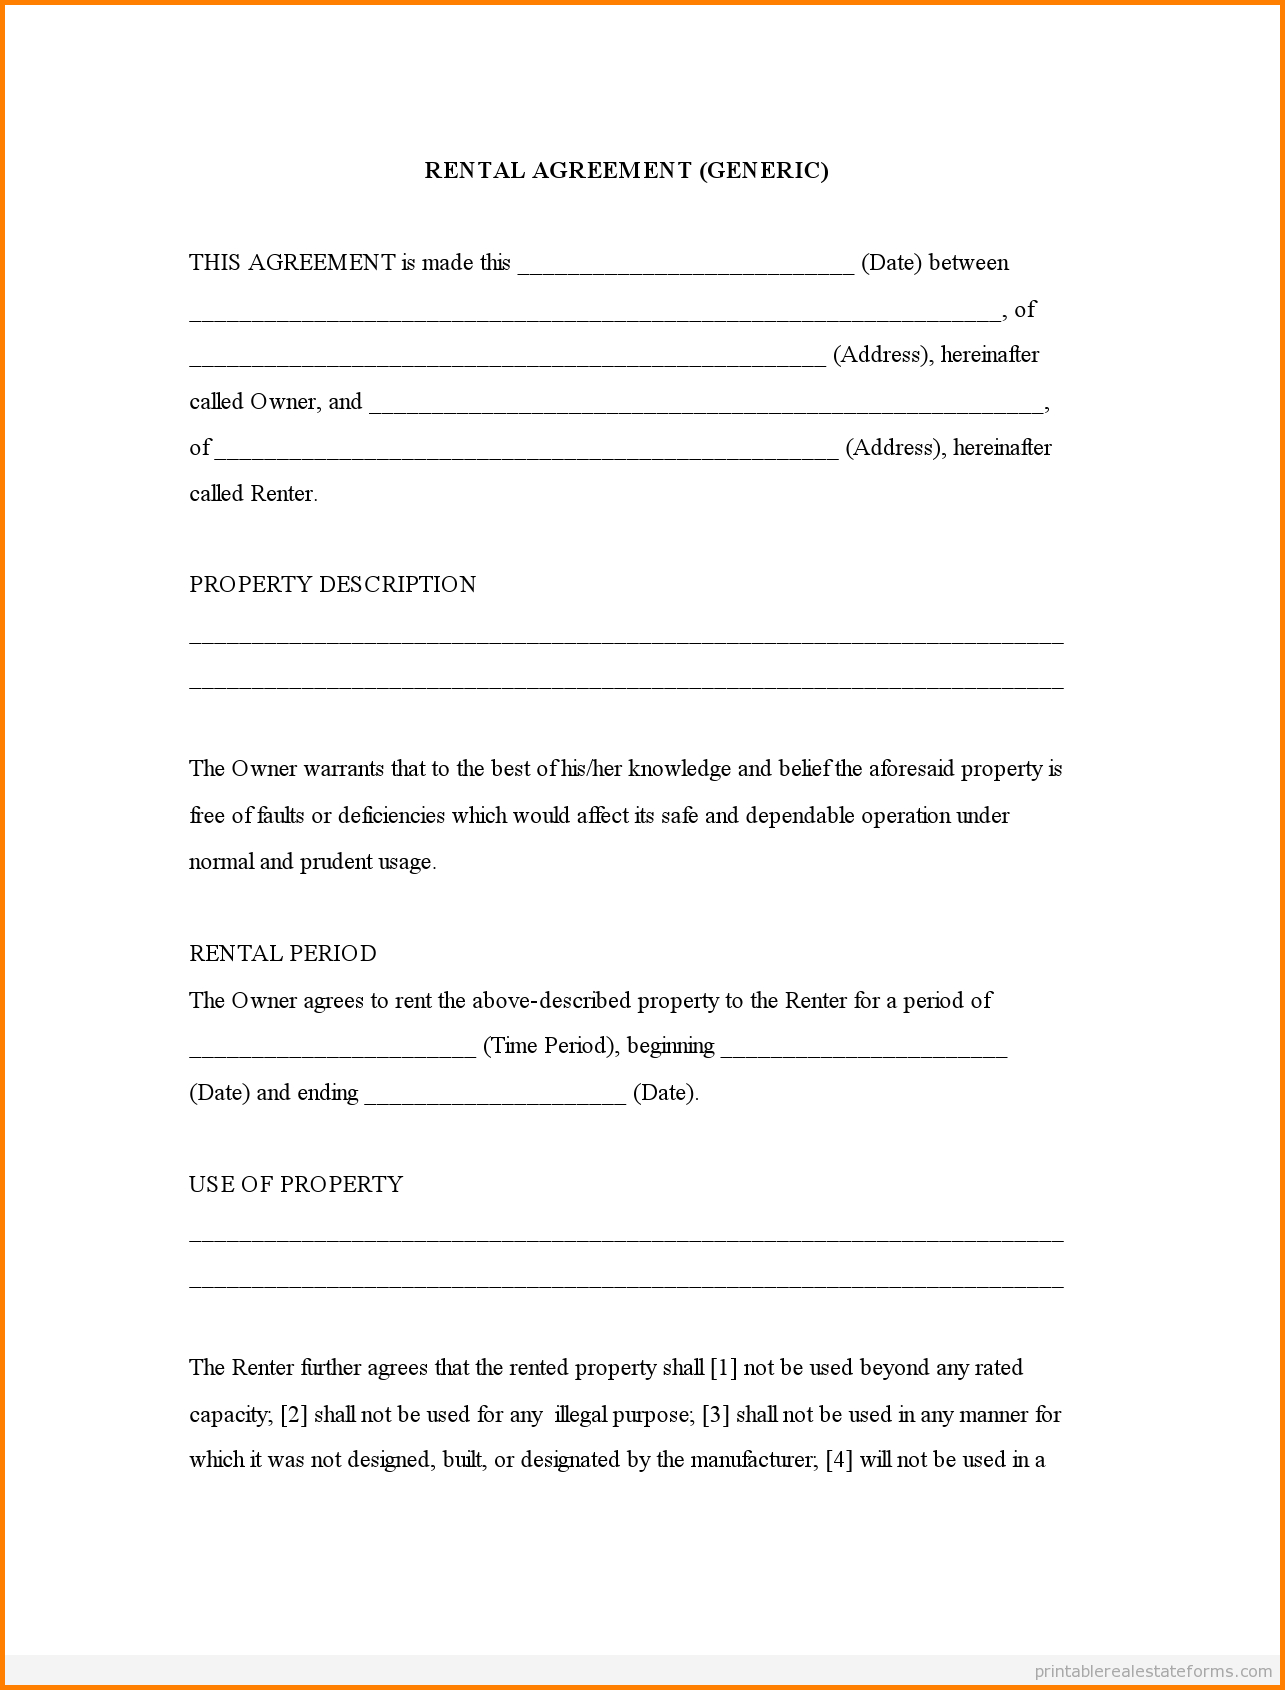 29 Images Of Print Free Rental Agreement Template | Linaca - Blank Lease Agreement Free Printable